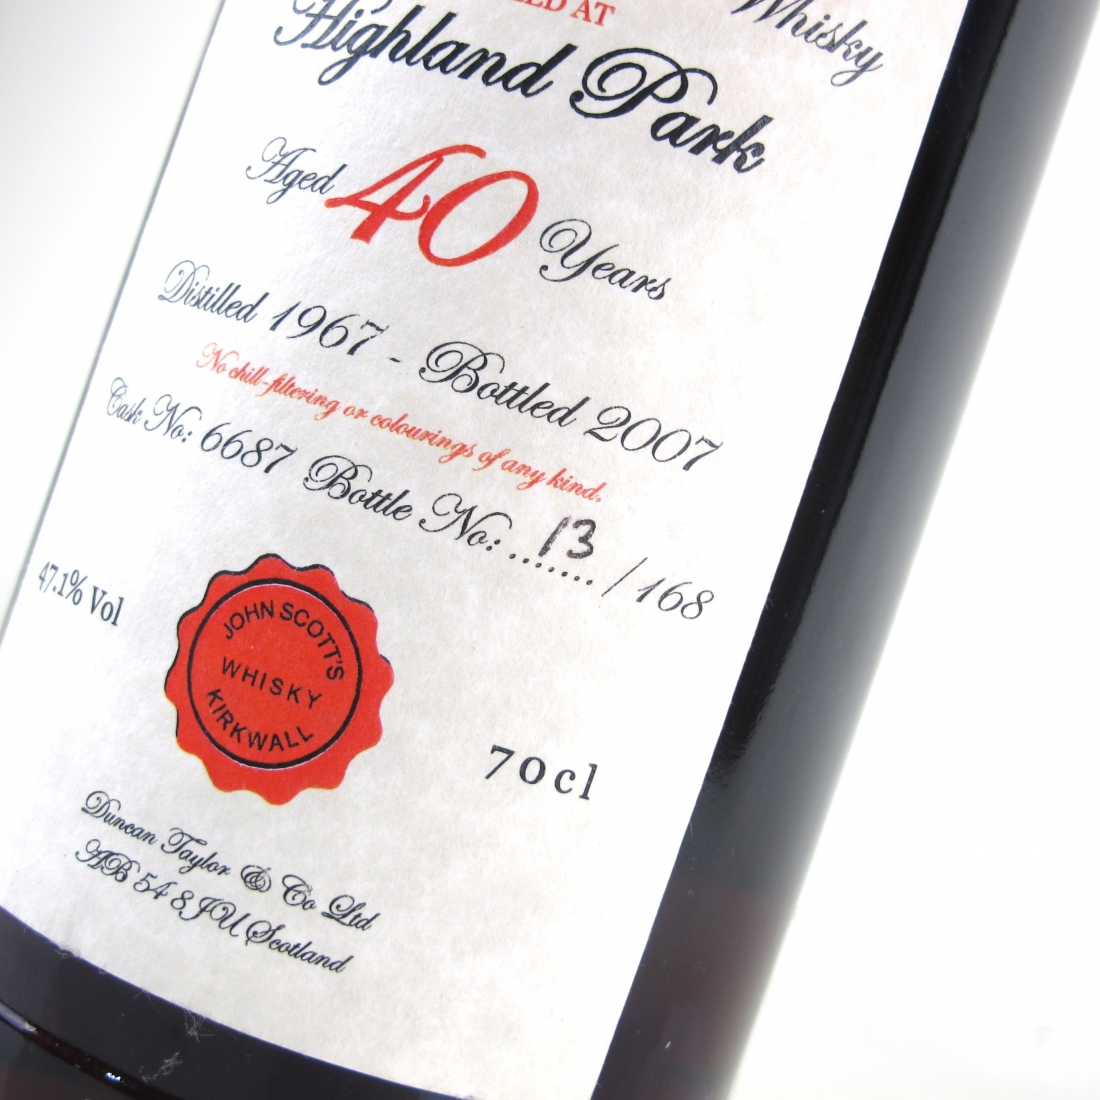 Highland Park 1967 John Scott's 40 Year Old